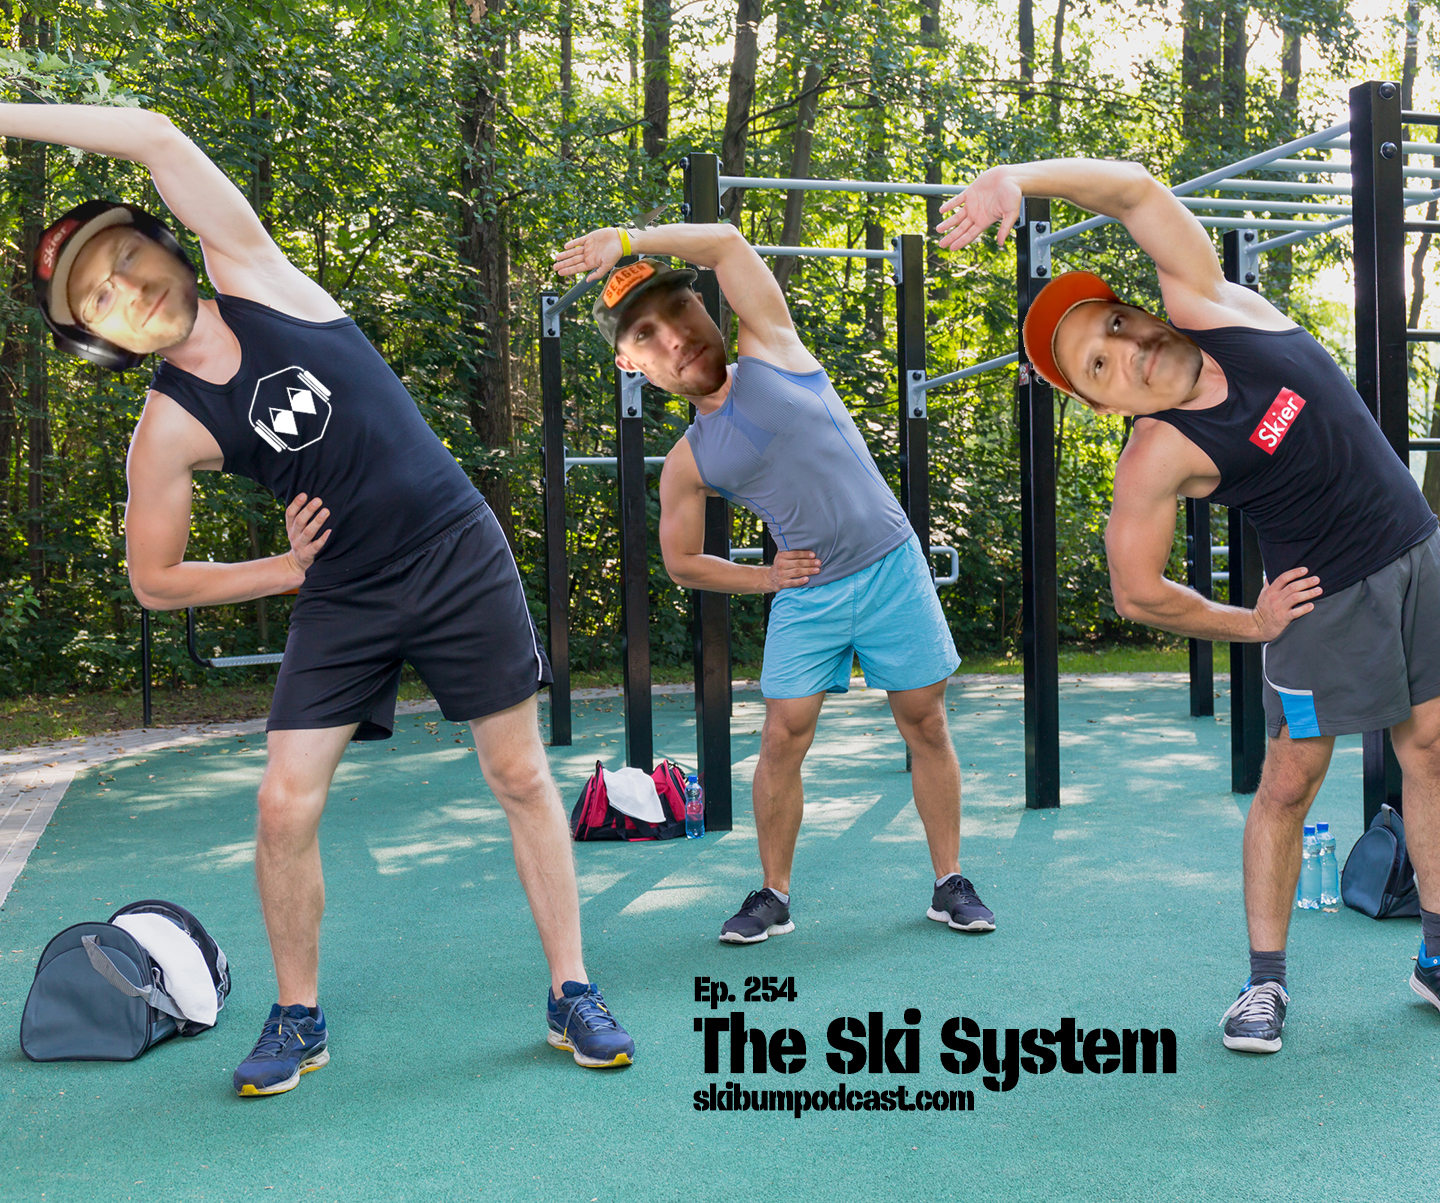 We chat with our friend Abe Maynard from The Ski System. You're not going to ski your legs into shape, bro. Abe will help you get in killer ski shape and have your best season yet.